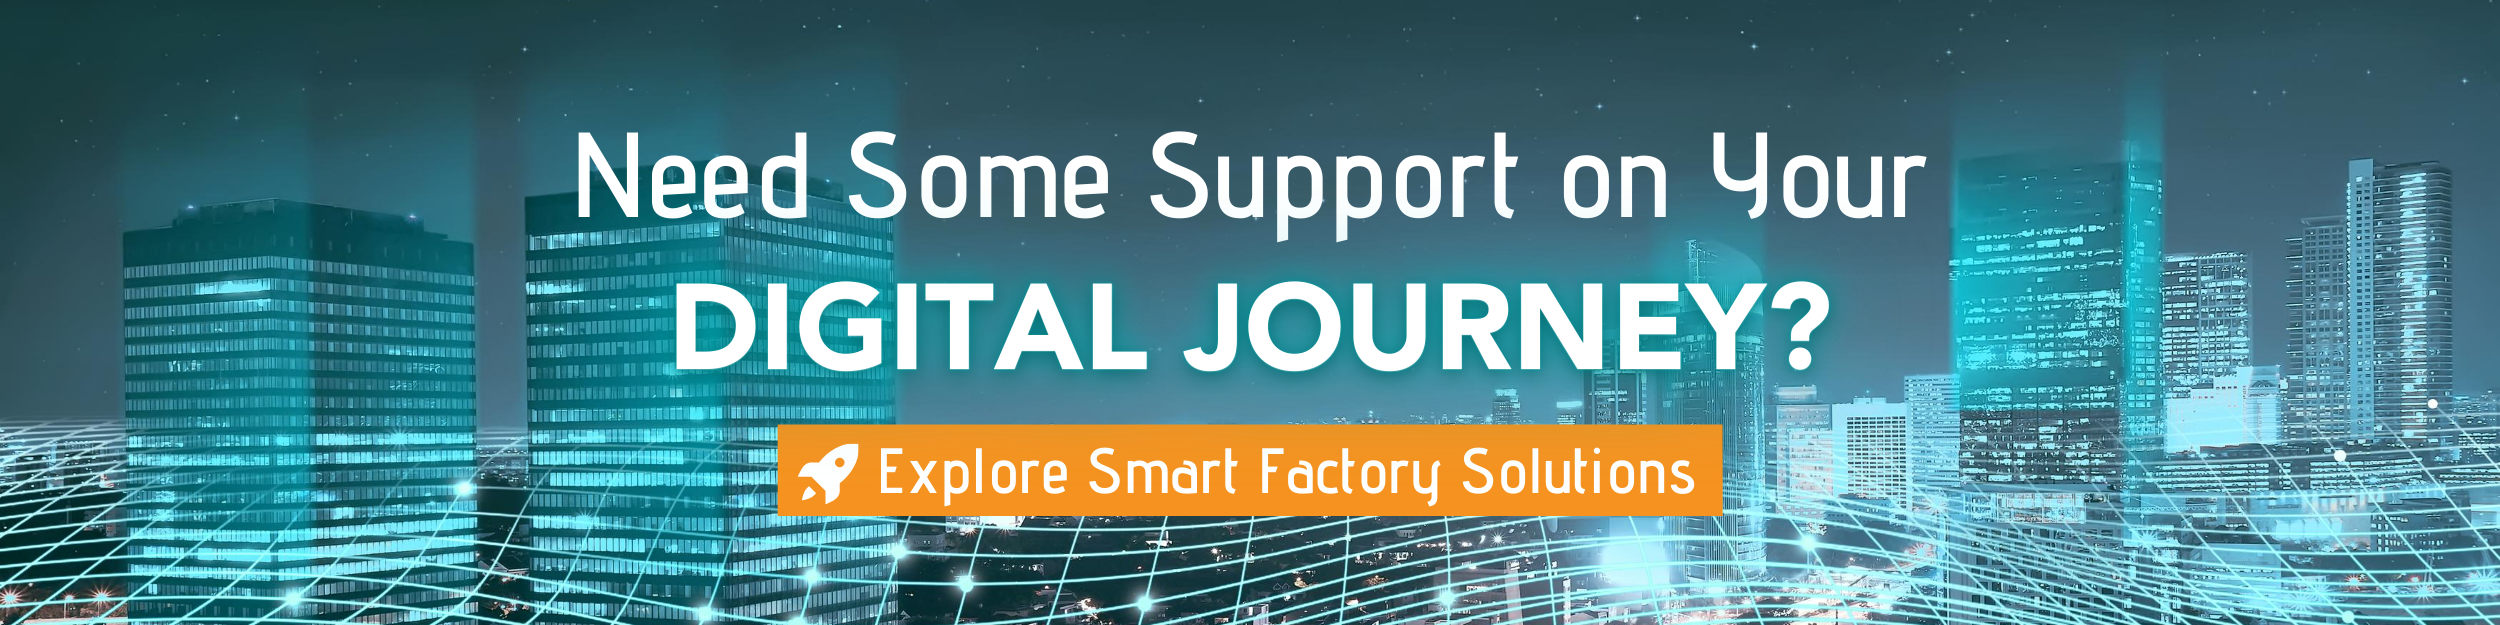 Explore Smart Factory Solutions